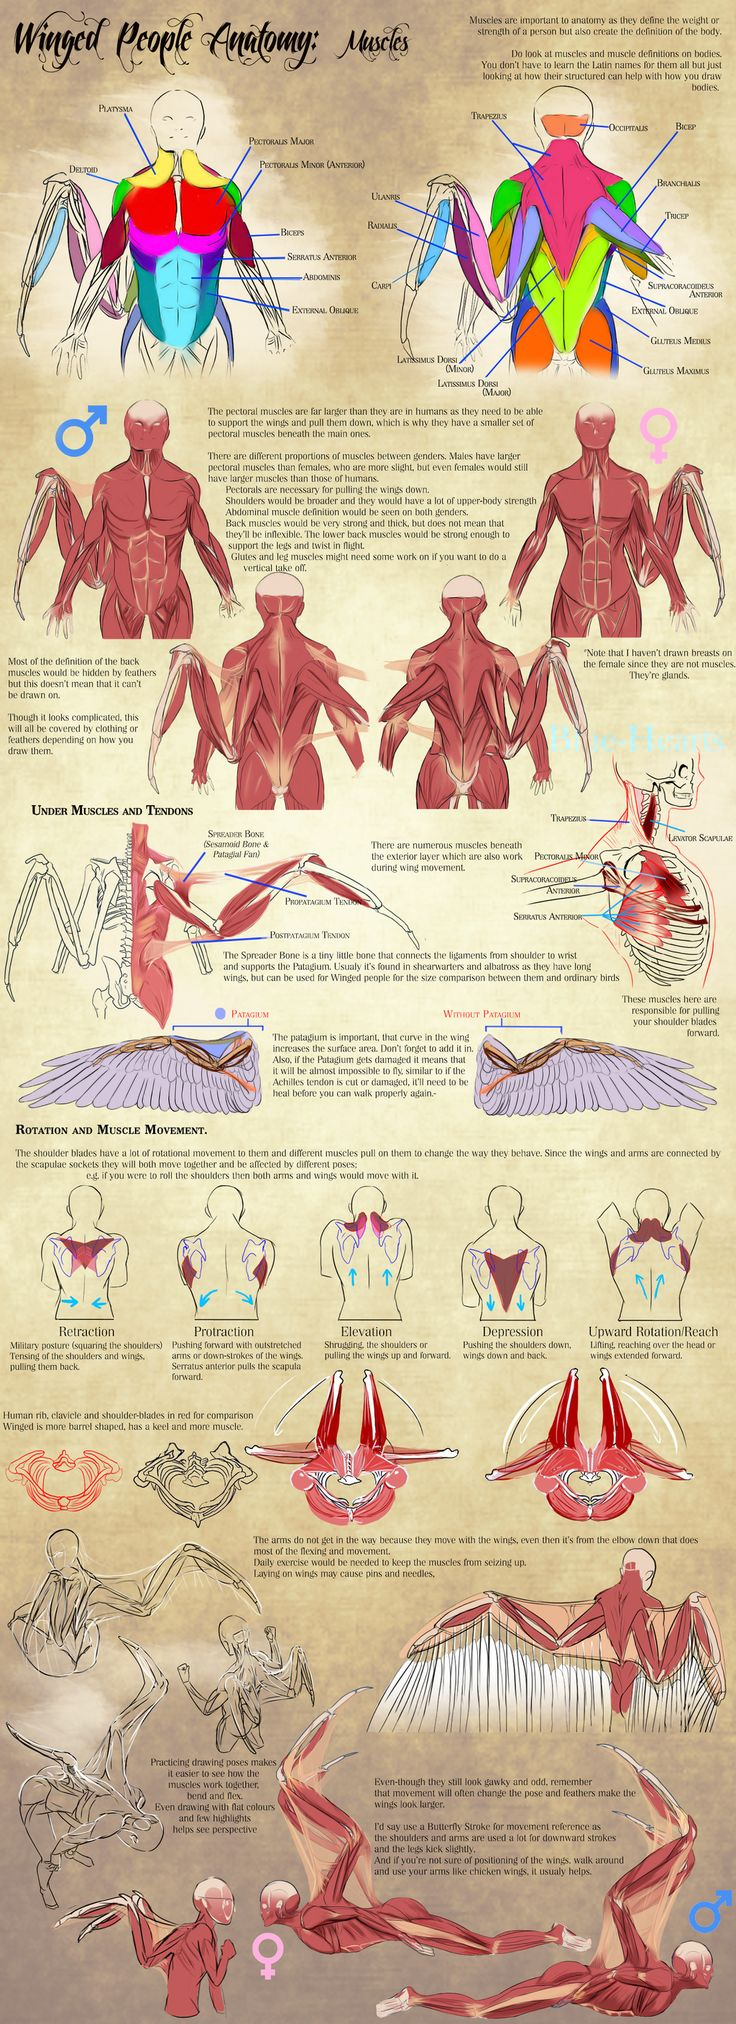 Winged People Anatomy: Muscles by Blue-Hearts.deviantart.com on @DeviantArt